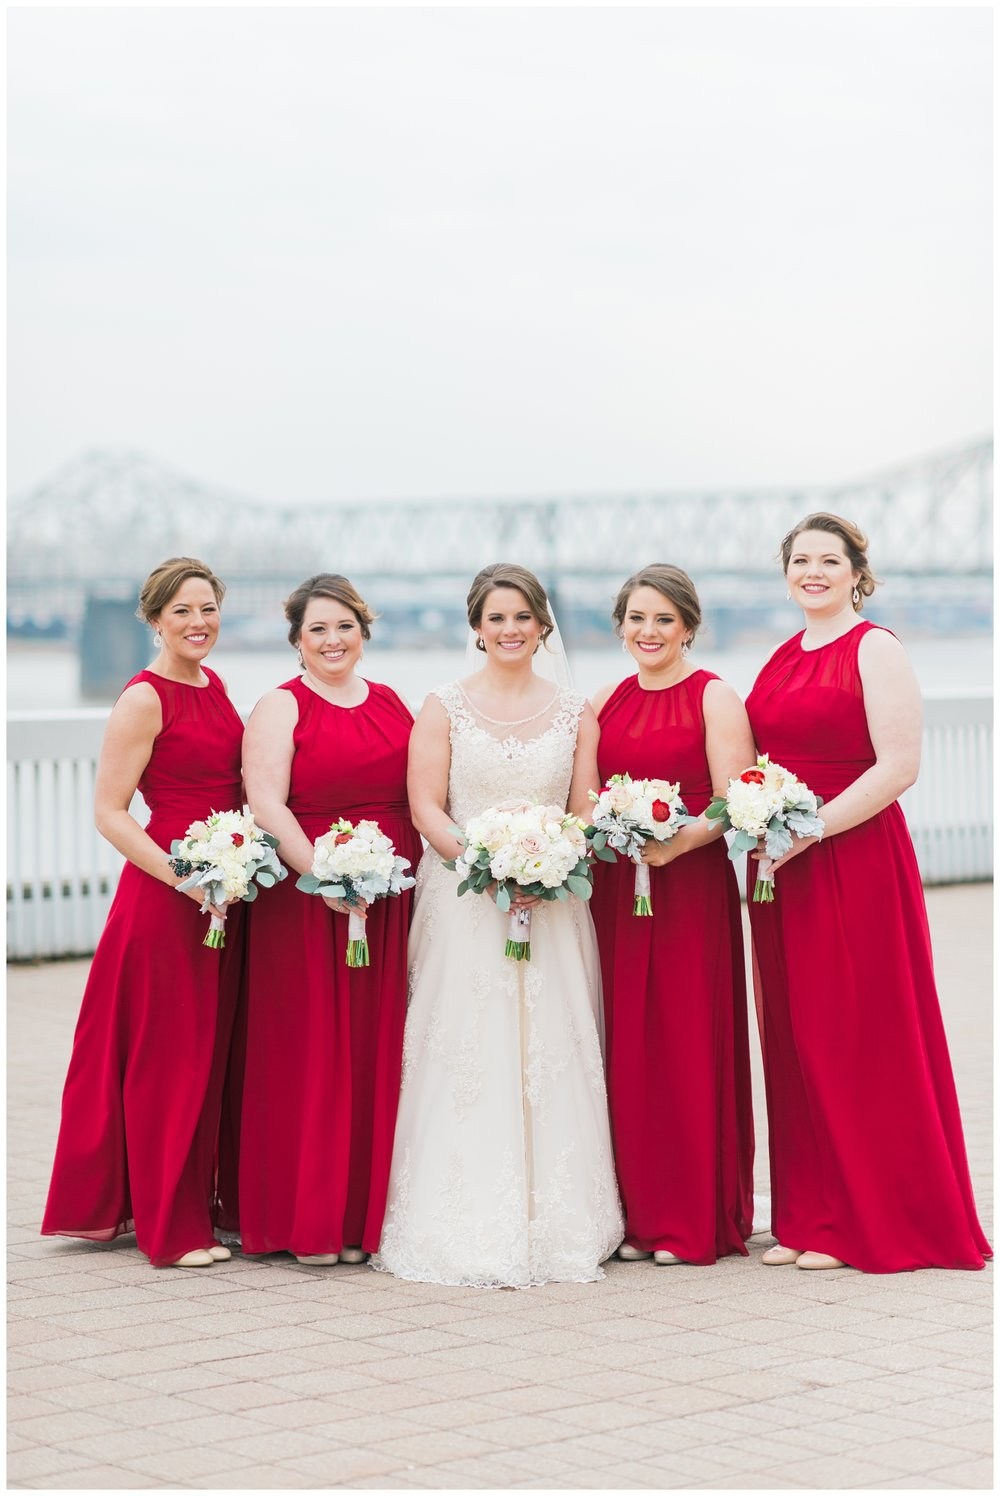 Rebecca_Bridges_Photography_Indianapolis_Wedding_Photographer_5915.jpg